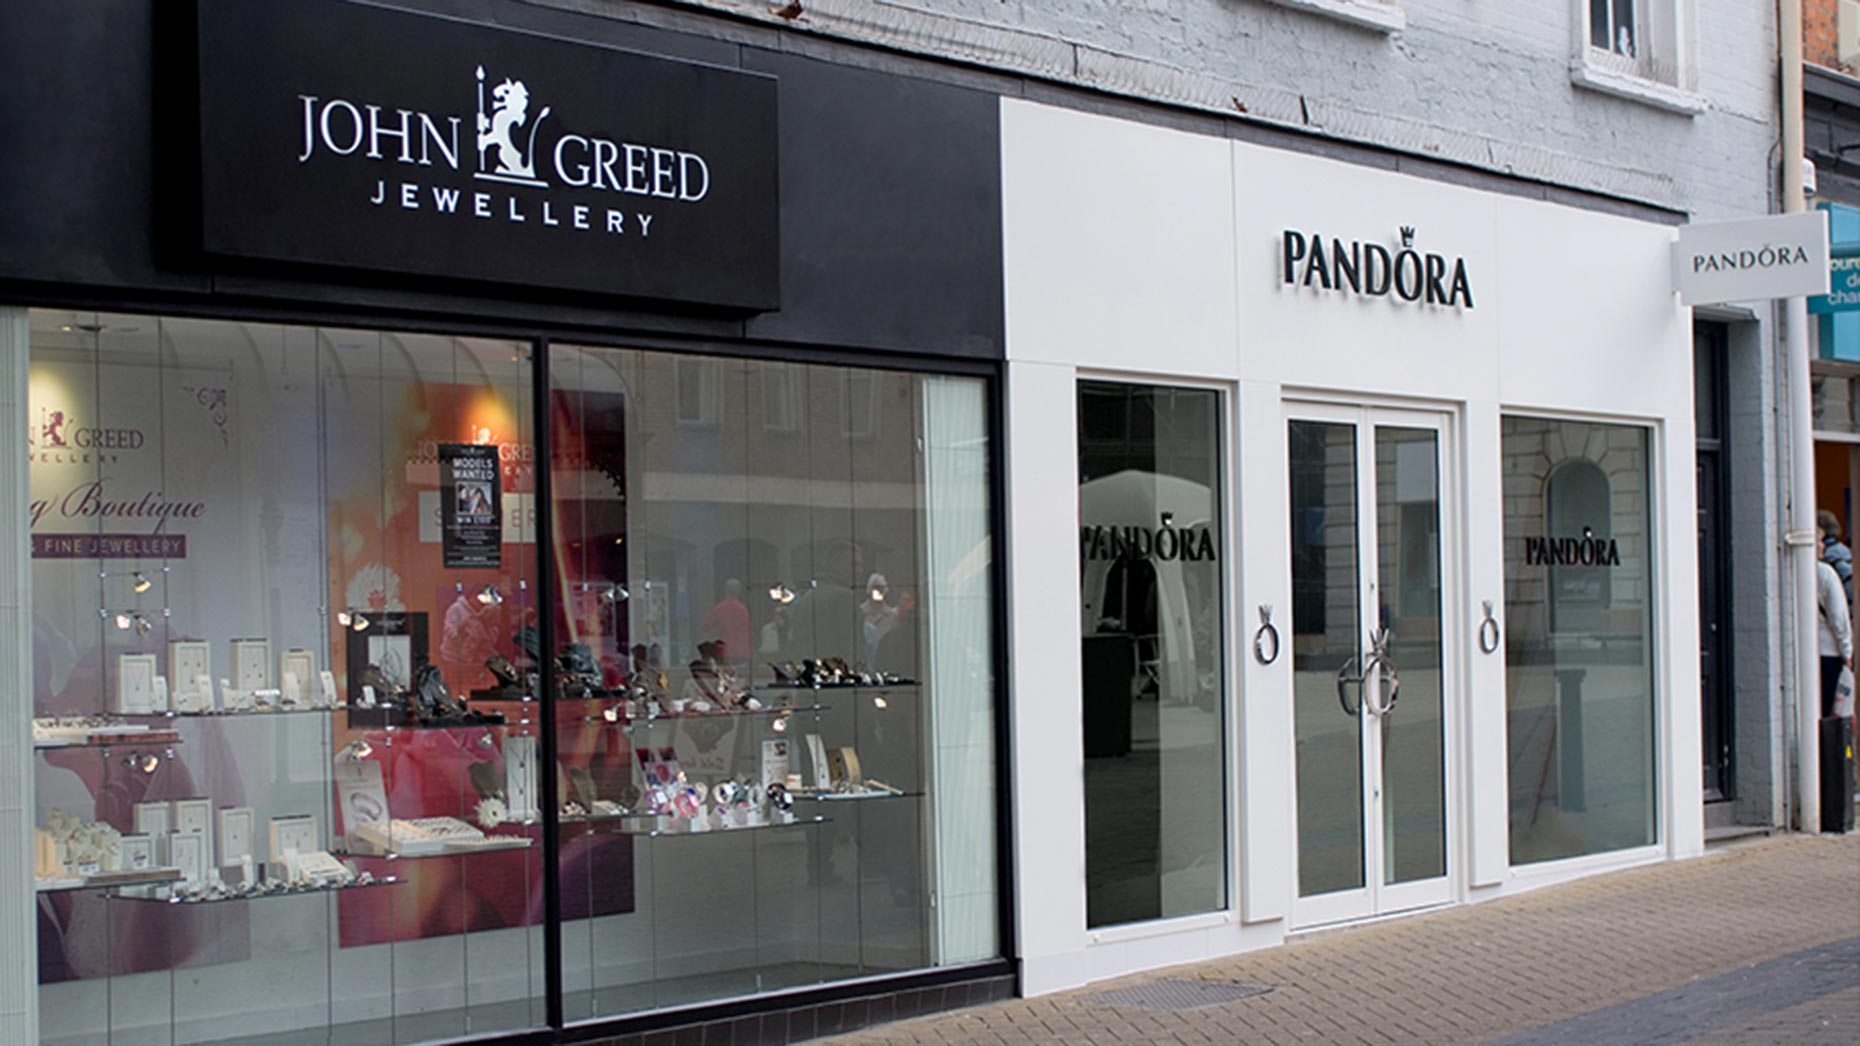 New pandora concept store to open in lincoln for John greed jewelry outlet